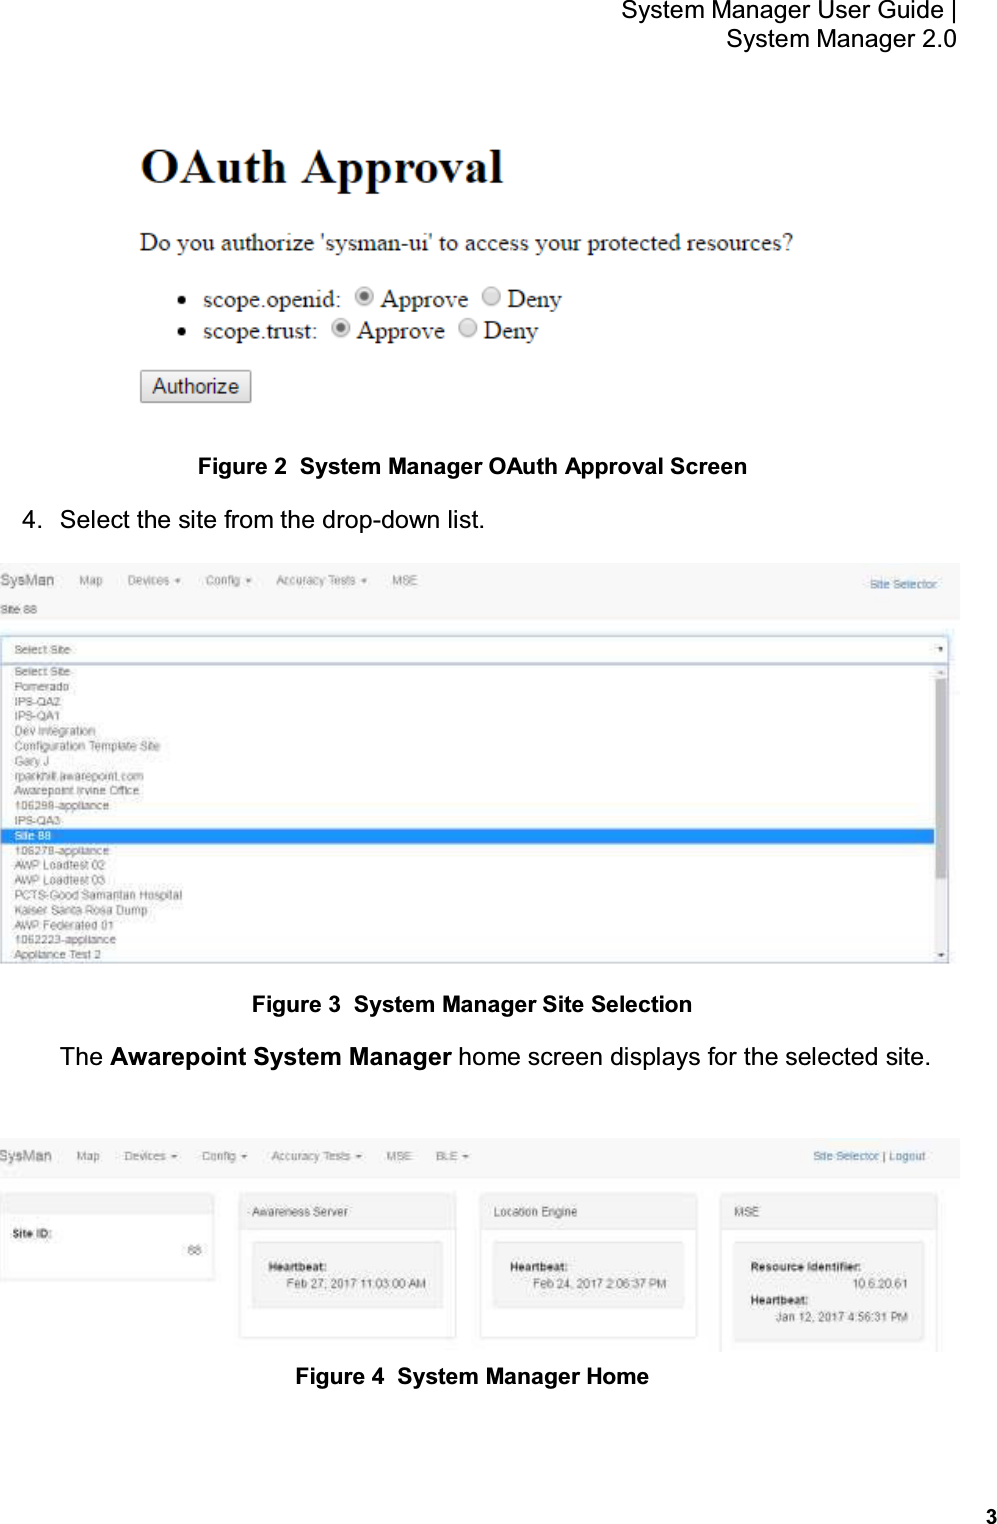 3 System Manager User Guide    System Manager 2.0  Figure 2  System Manager OAuth Approval Screen 4.  Select the site from the drop-down list.  Figure 3  System Manager Site Selection The Awarepoint System Manager home screen displays for the selected site.    Figure 4  System Manager Home